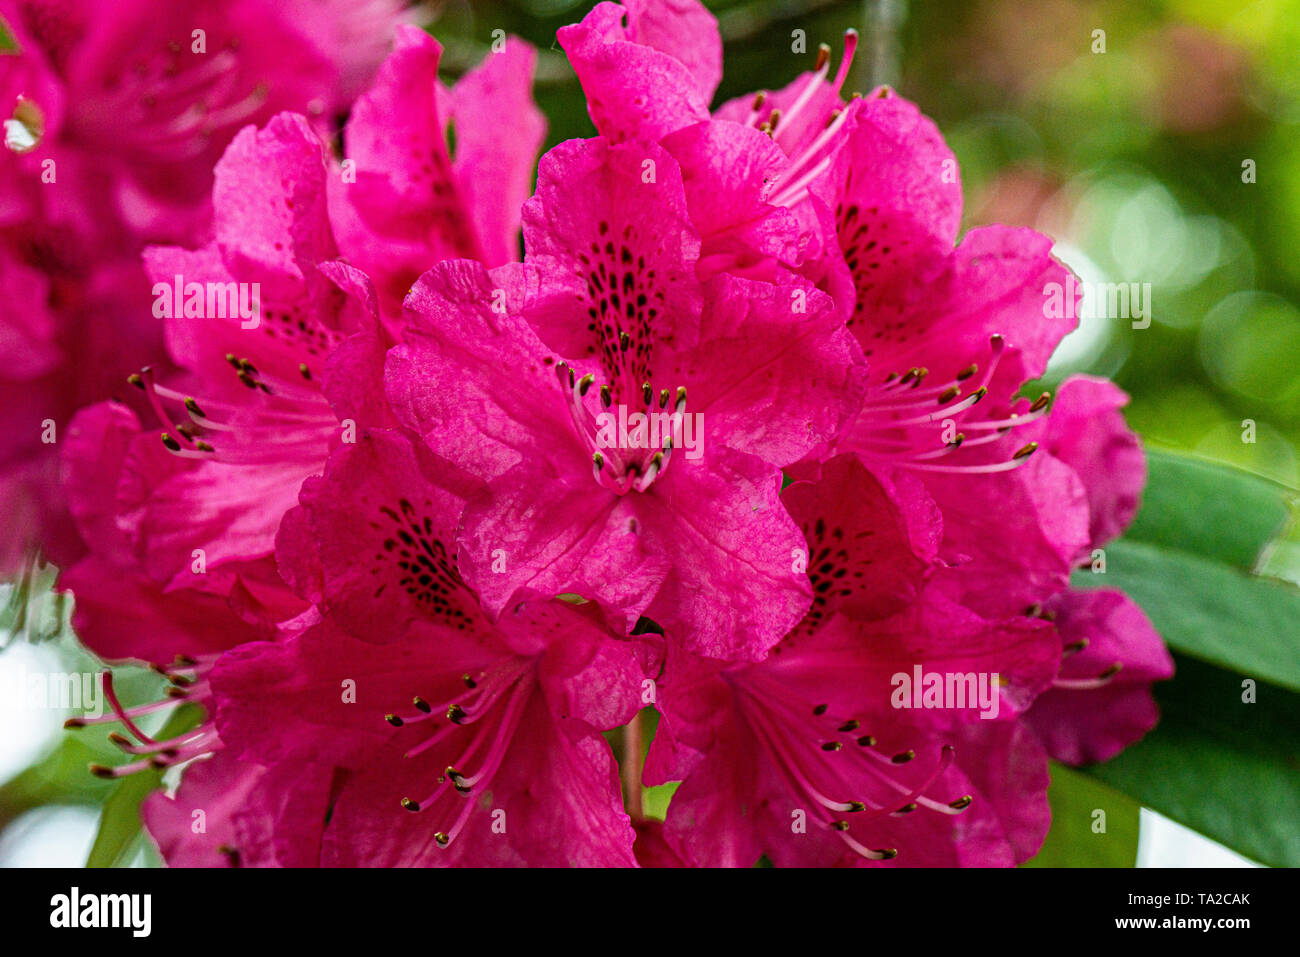 The flowers of a tree-like rhododendron (Rhododendron arboreum) - Stock Image